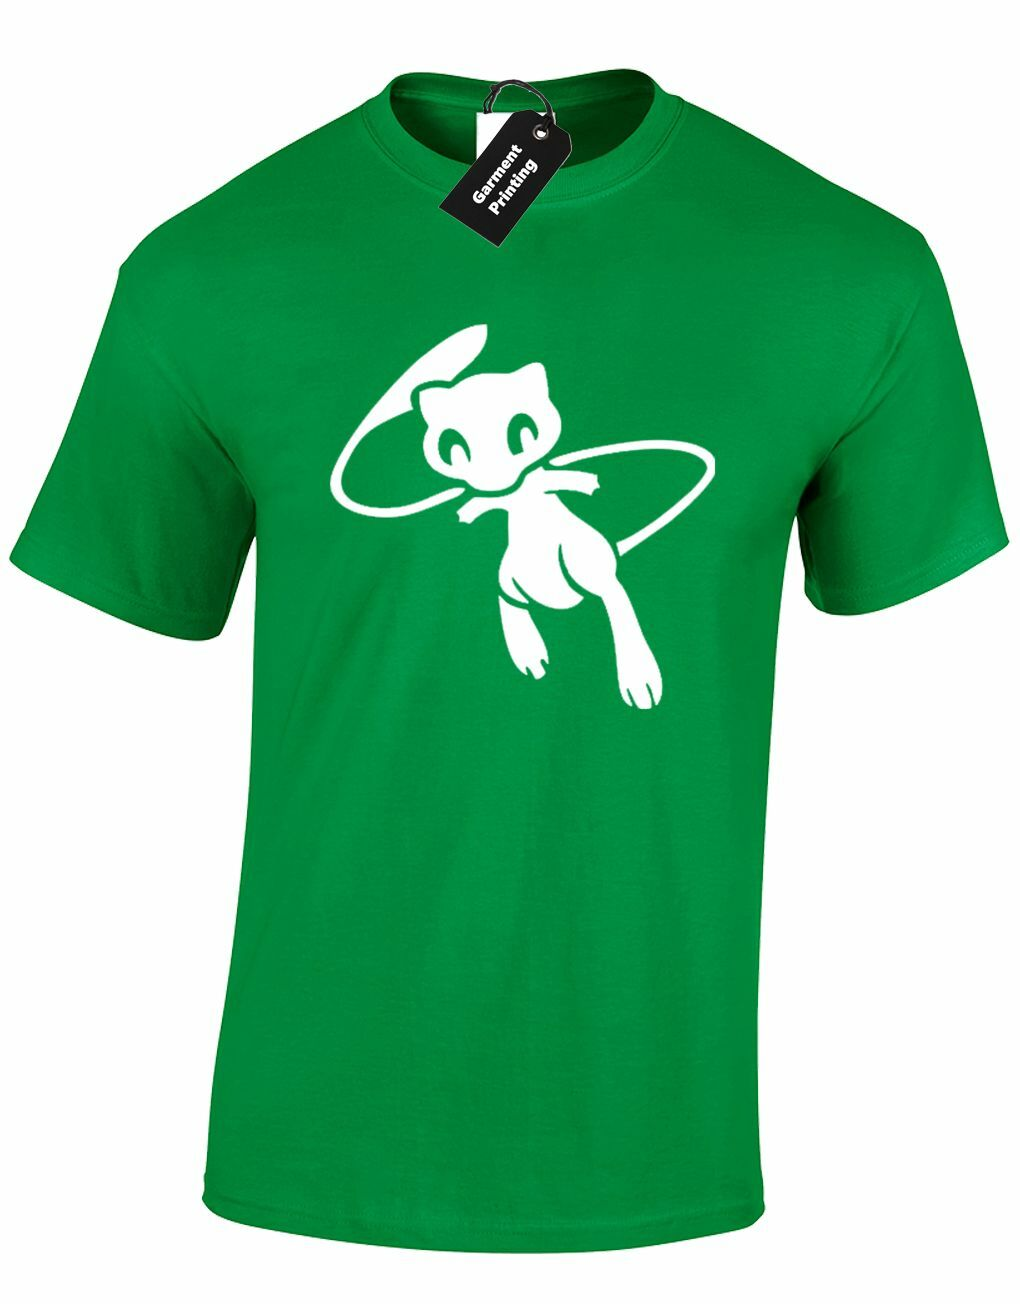 a1c29d1717d66 MEW SILHOUETTE MENS T SHIRT POKEBALL PIKA ANIME SQUIRTLE MEWTWO MANGA GIFT  NEW Funny free shipping Casual tshirt